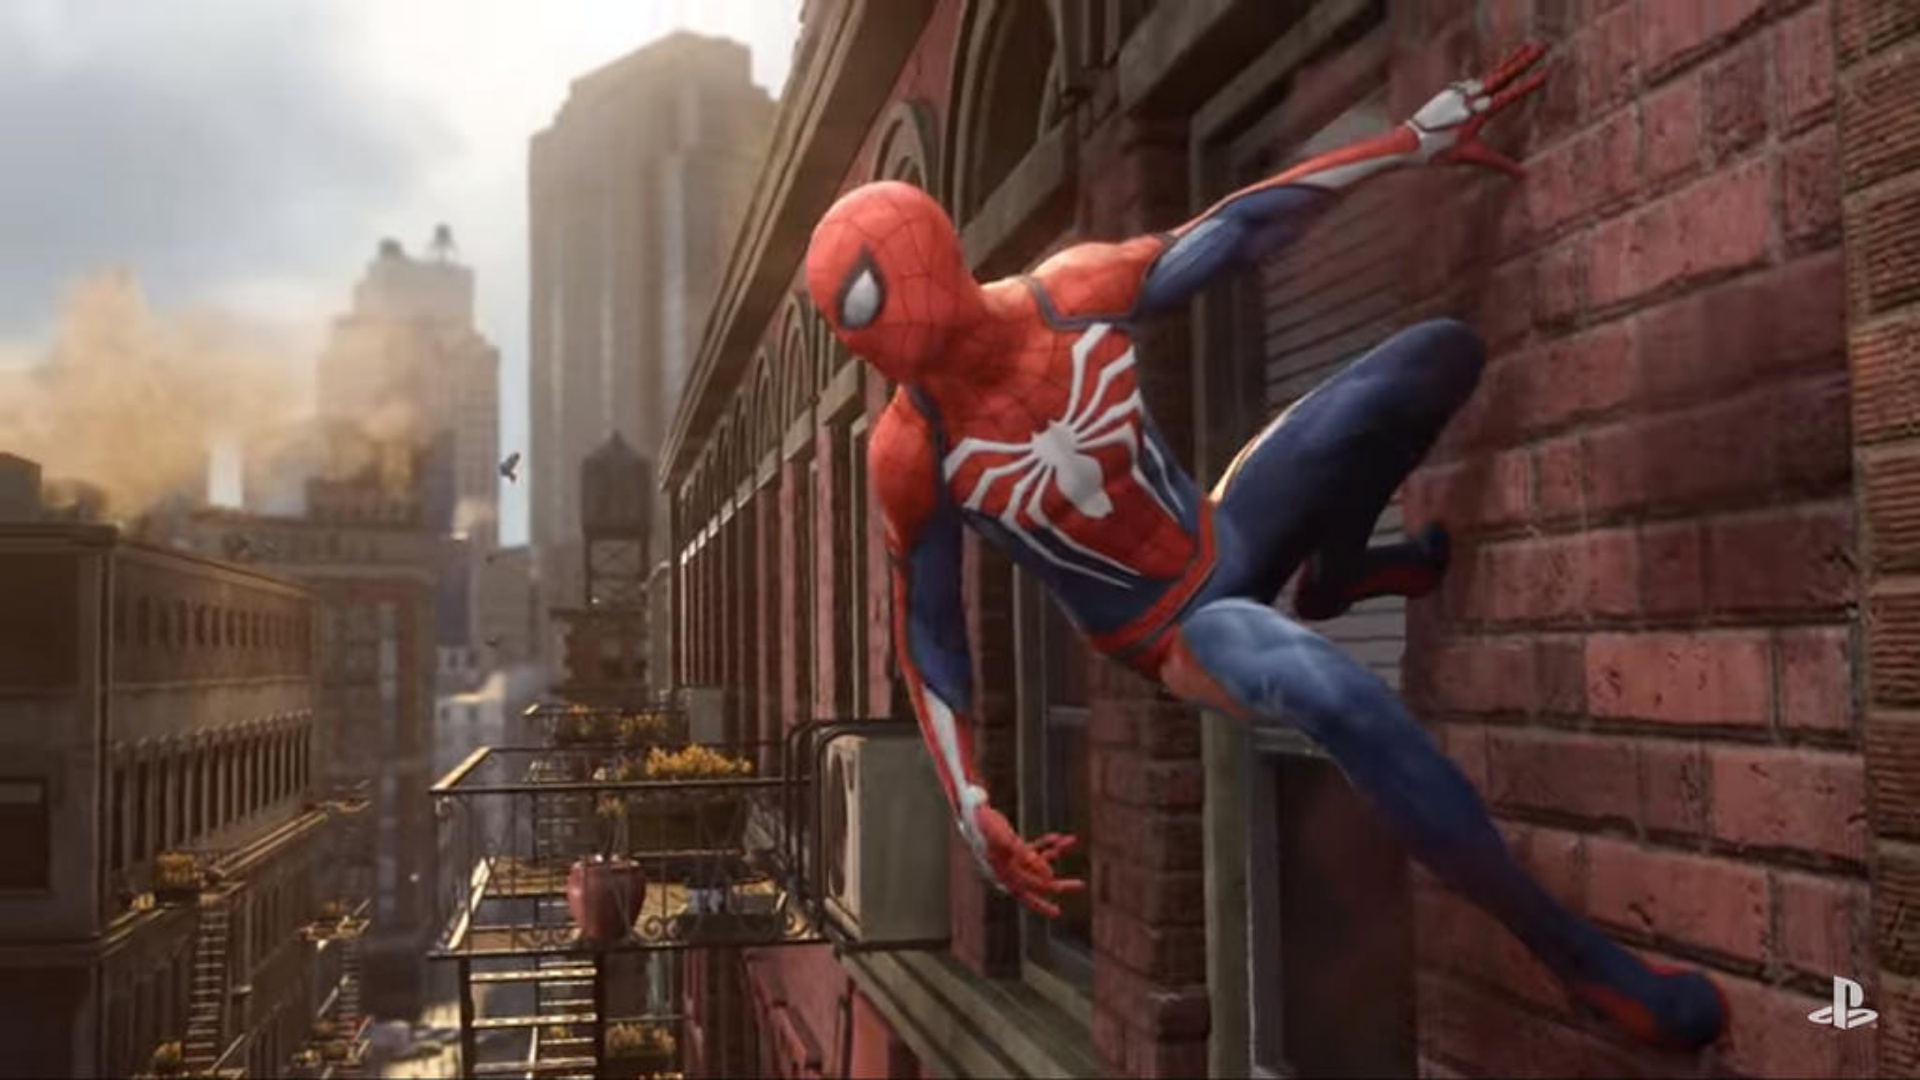 'Spider-Man' PS4 update: New web-swinging gameplay and costume details revealed